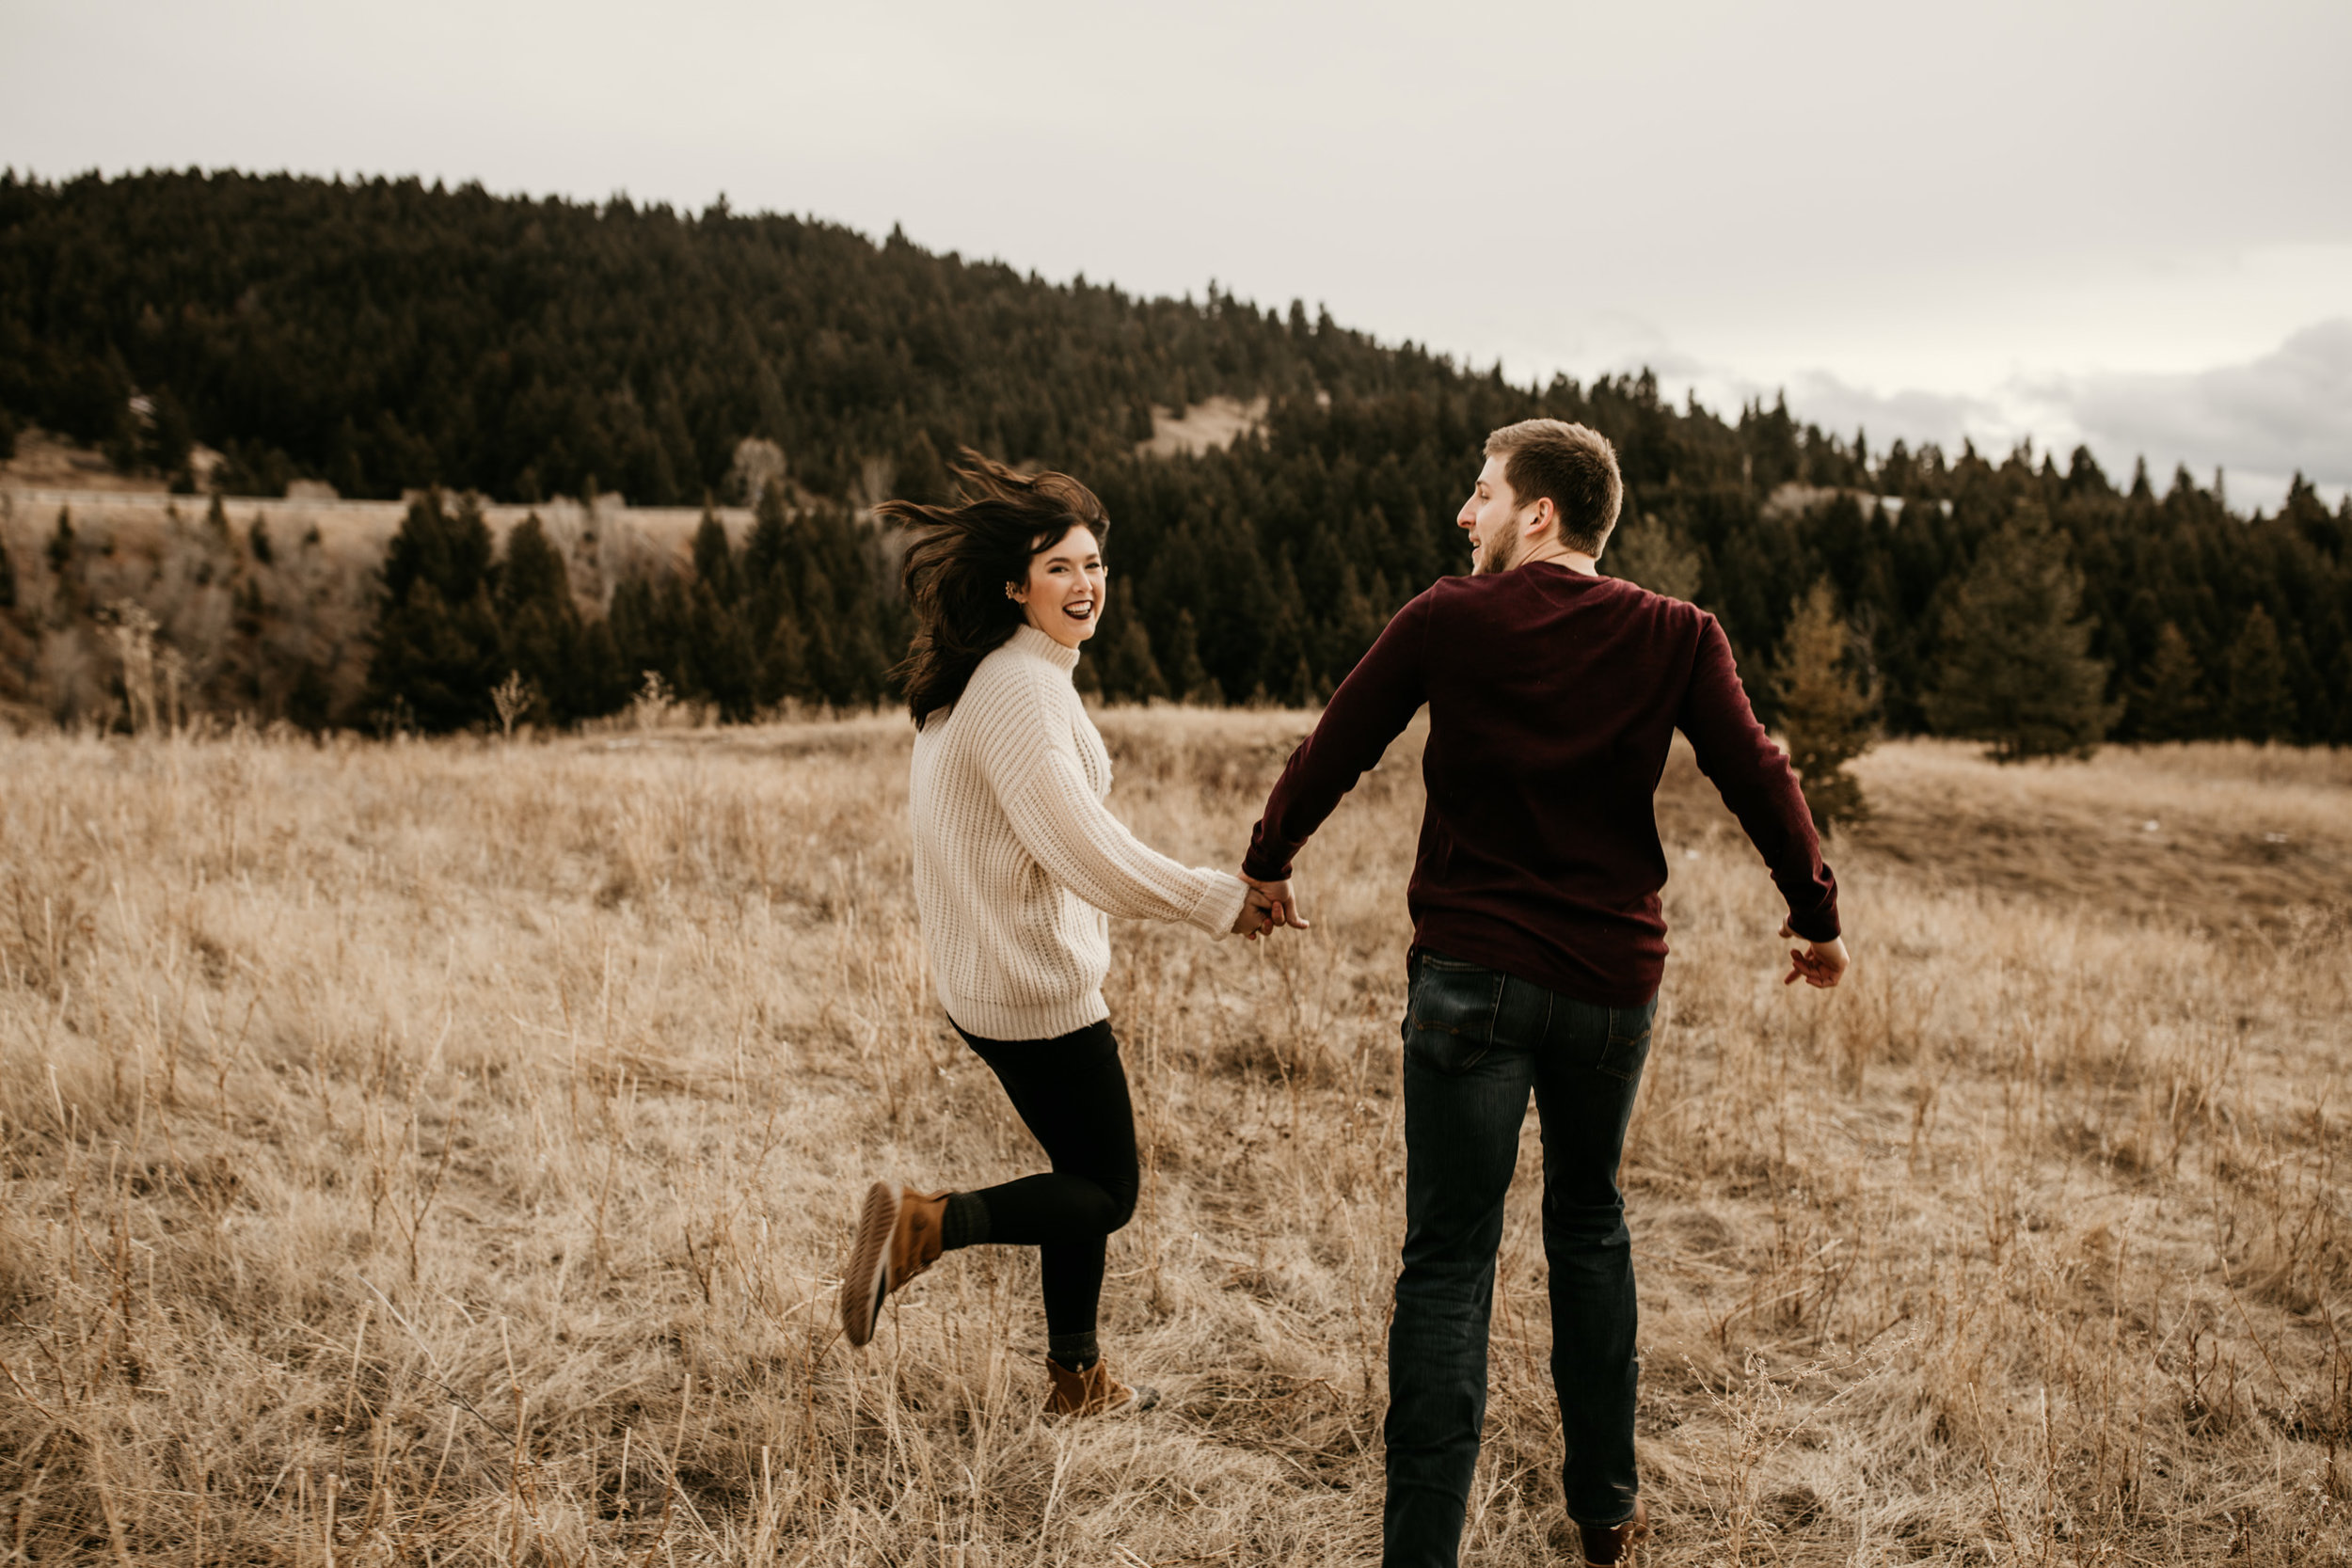 Molly-Trenton_Montana-Waterfall-Engagment-Session-27.jpg